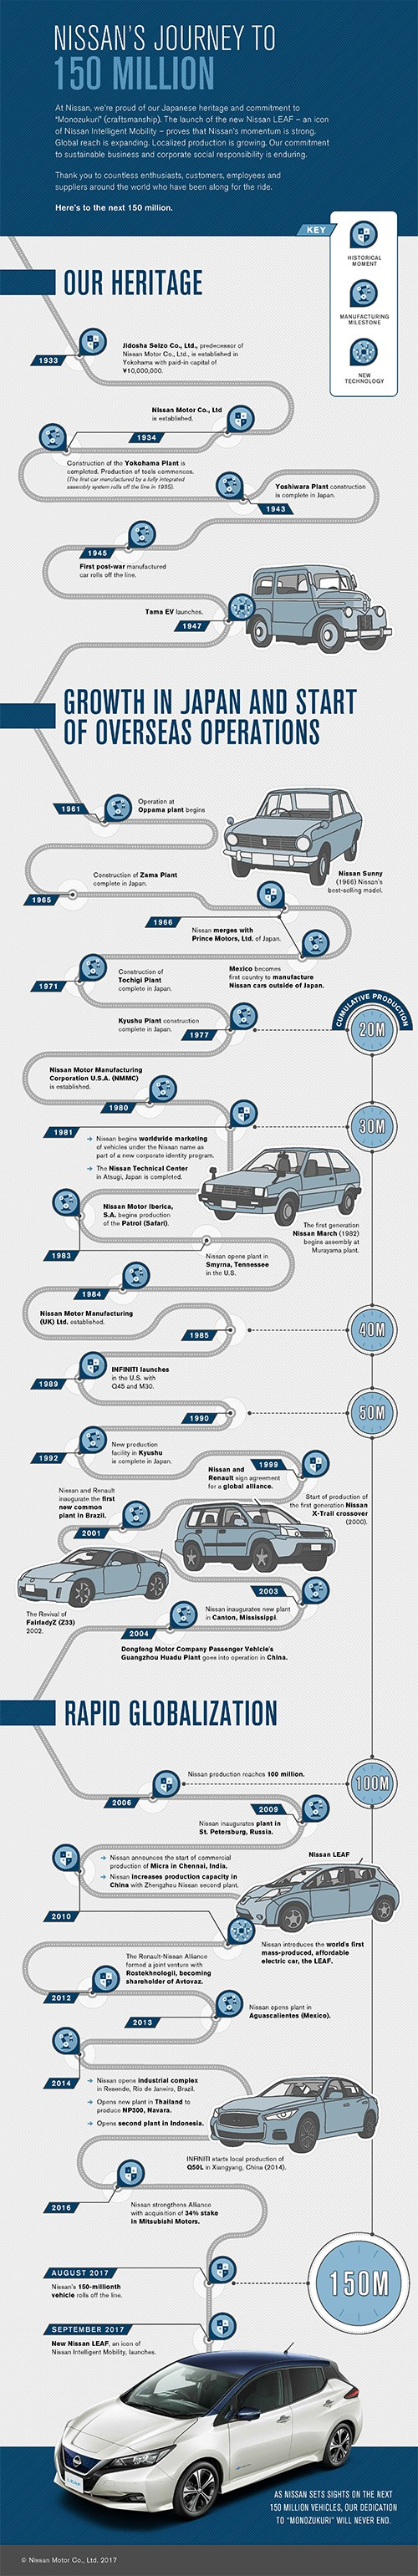 NISSAN'S JOURNEY TO 150 MILLION